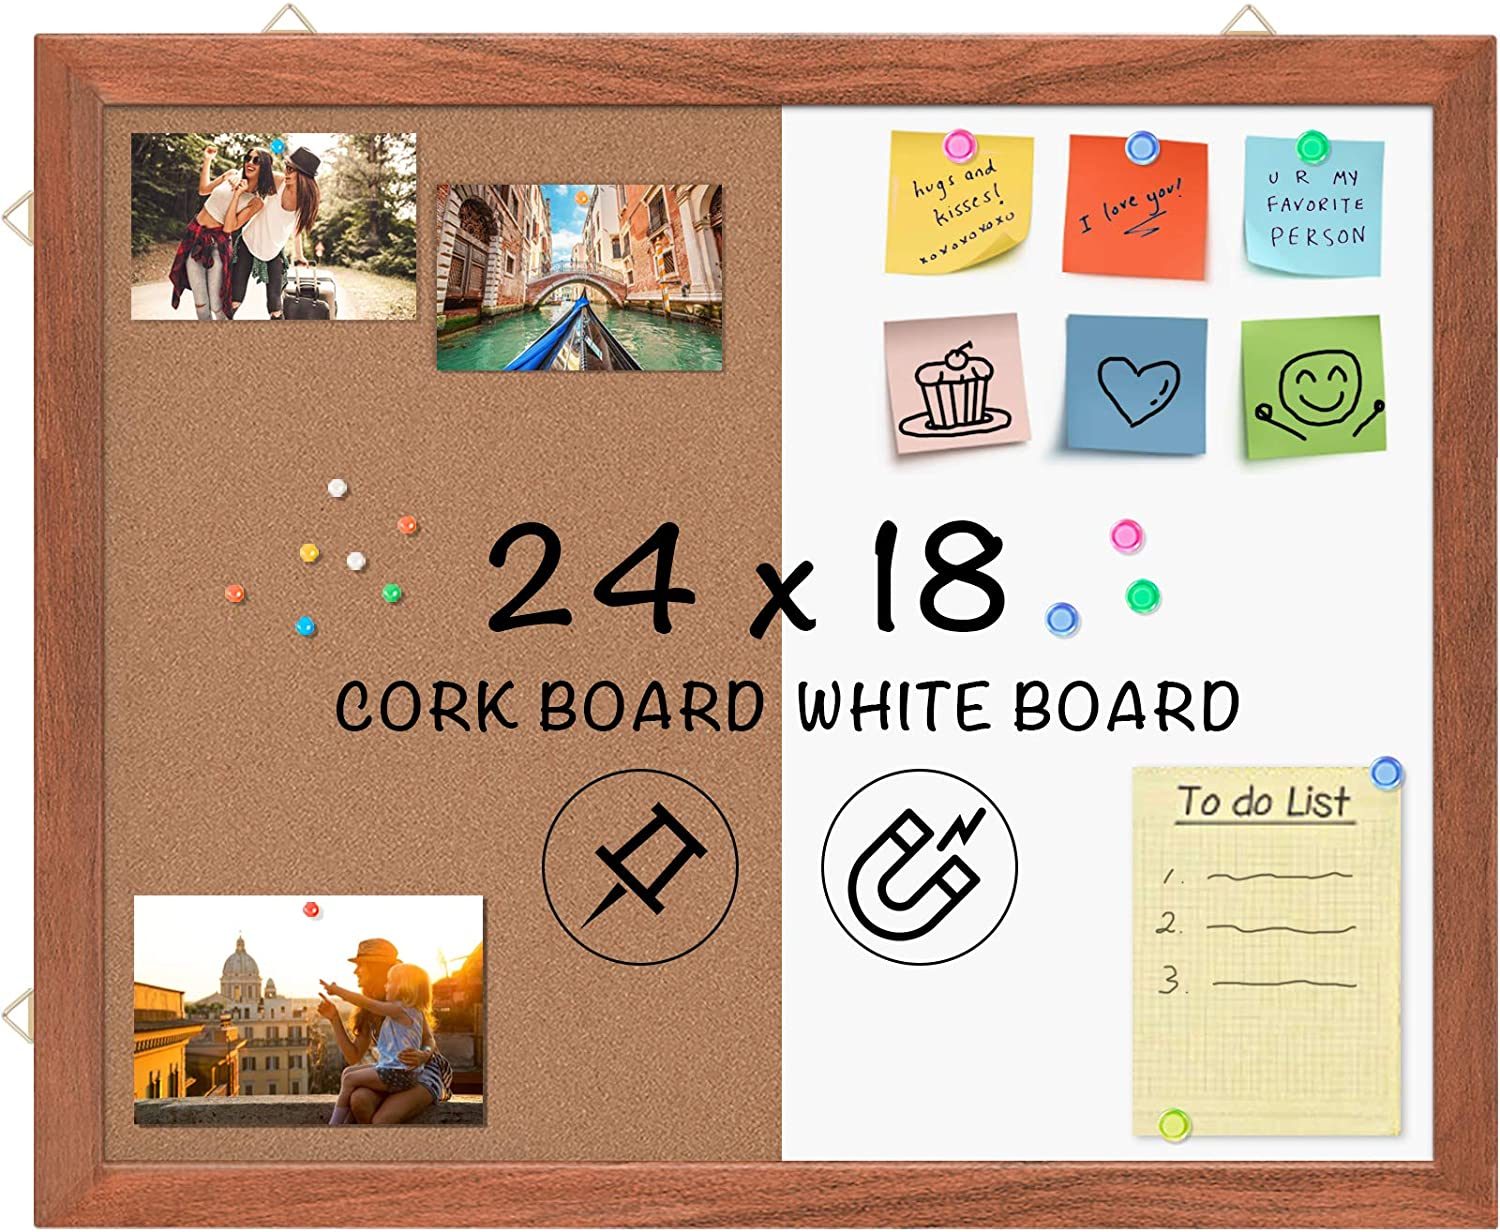 Wood Frame Combo Board Dry Erase Cork Board Combination Magnetic Whiteboard & Bulletin Board, 24 x 18 inches Combo Dry Erase Board Hanging Message Board Wall Mounted for Decor, Home, Office, Classroom